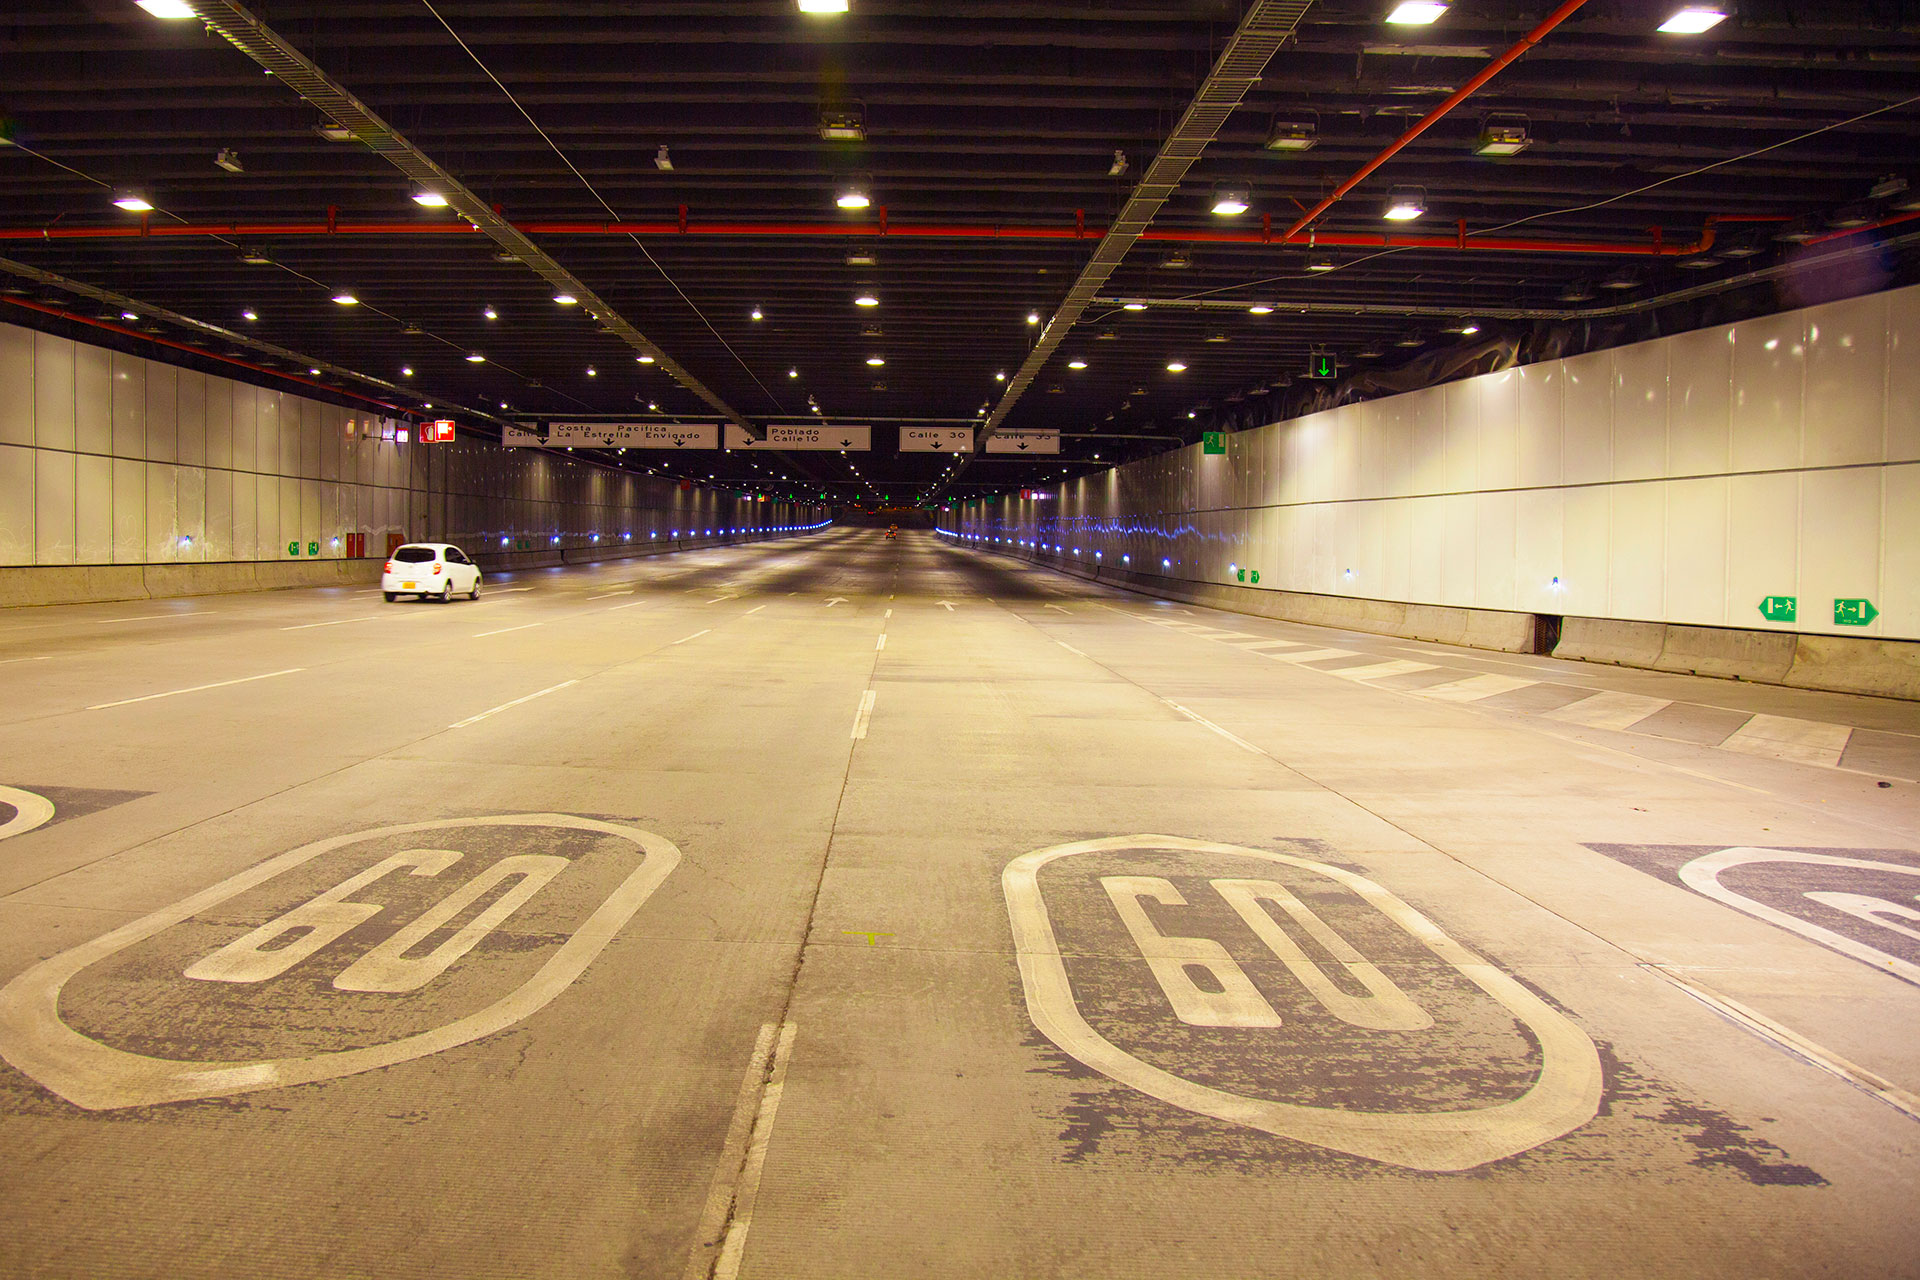 Schréder tunnel lighting solution enhances motorist experience in this busy city tunnel